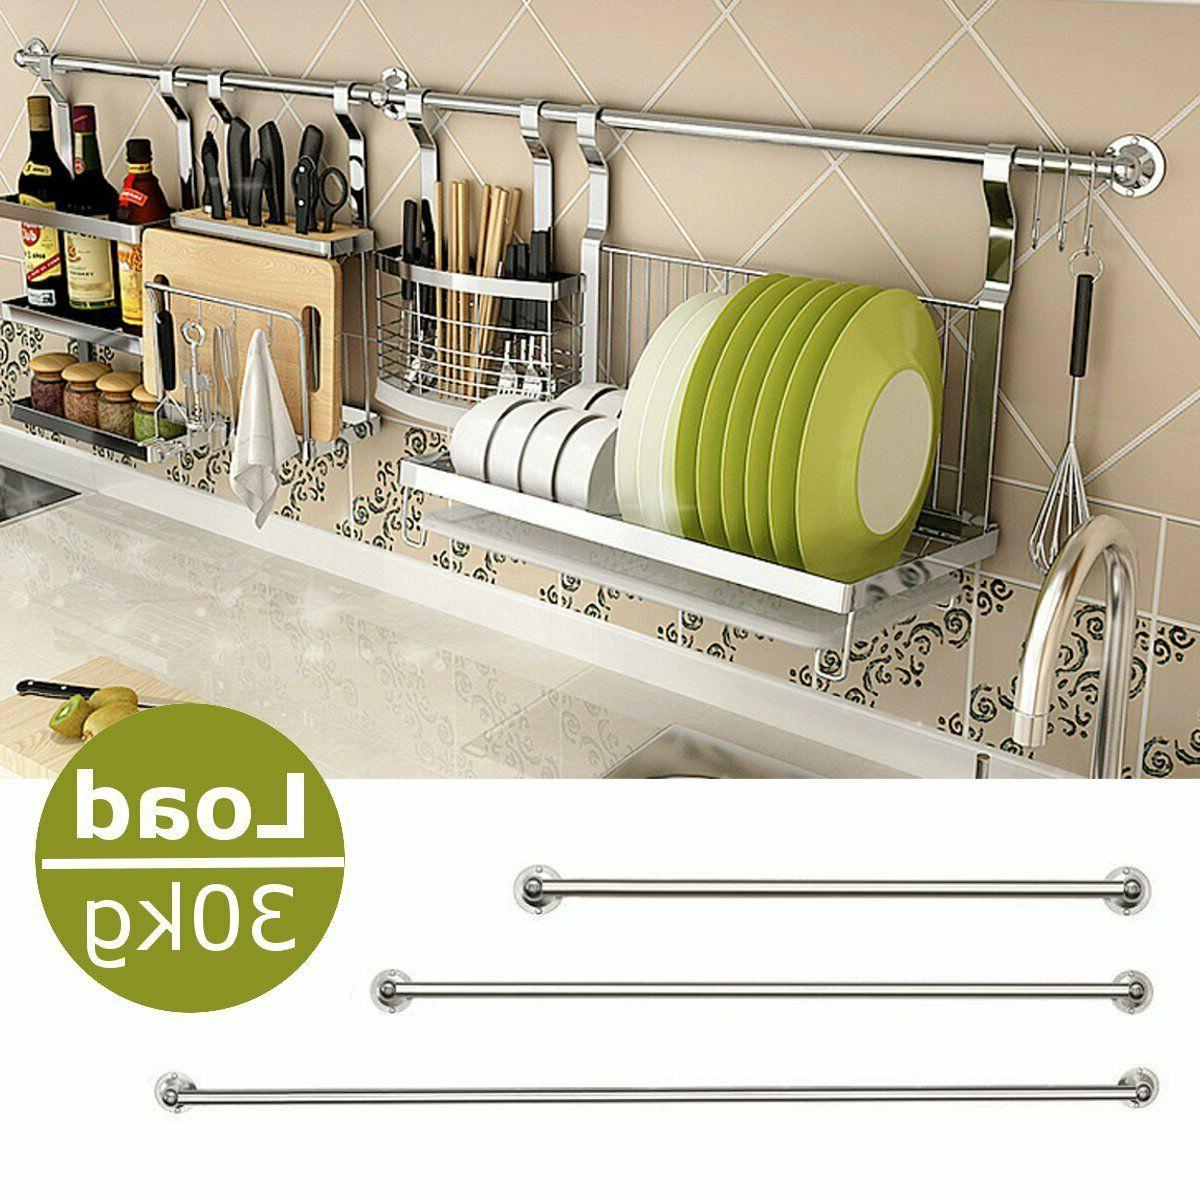 stainless steel hanging rod home kitchen wall